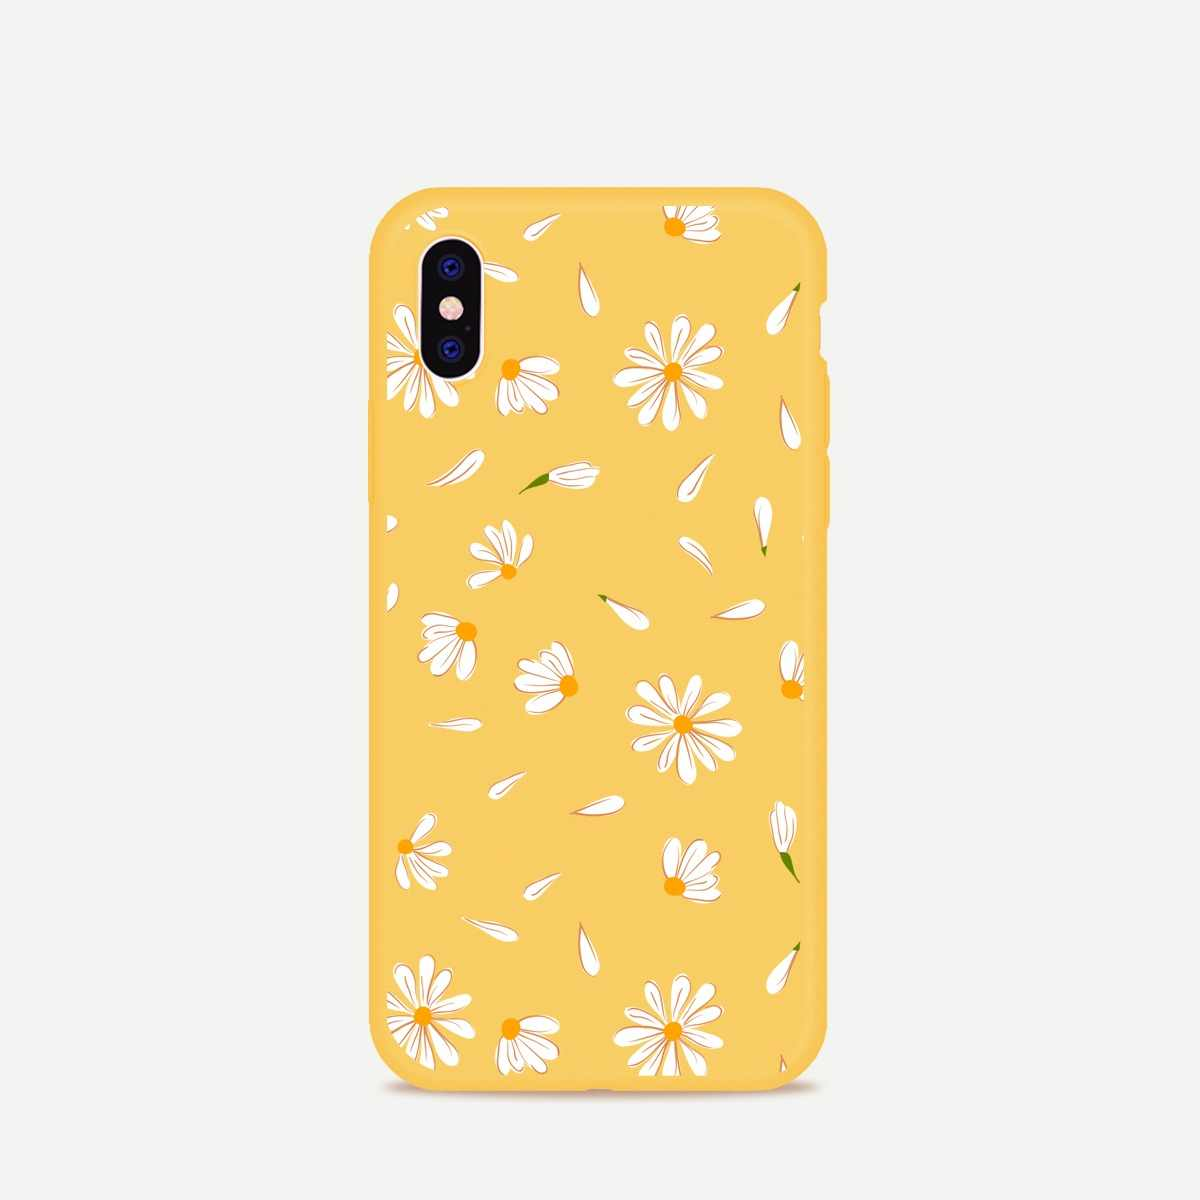 DIFFRBEAUTY Phone Cases For iPhone 7 XR XS MAX 8 6 X Plus 5S Case Luxury Daisy Cute Flower Summer Transparent Silicone Case